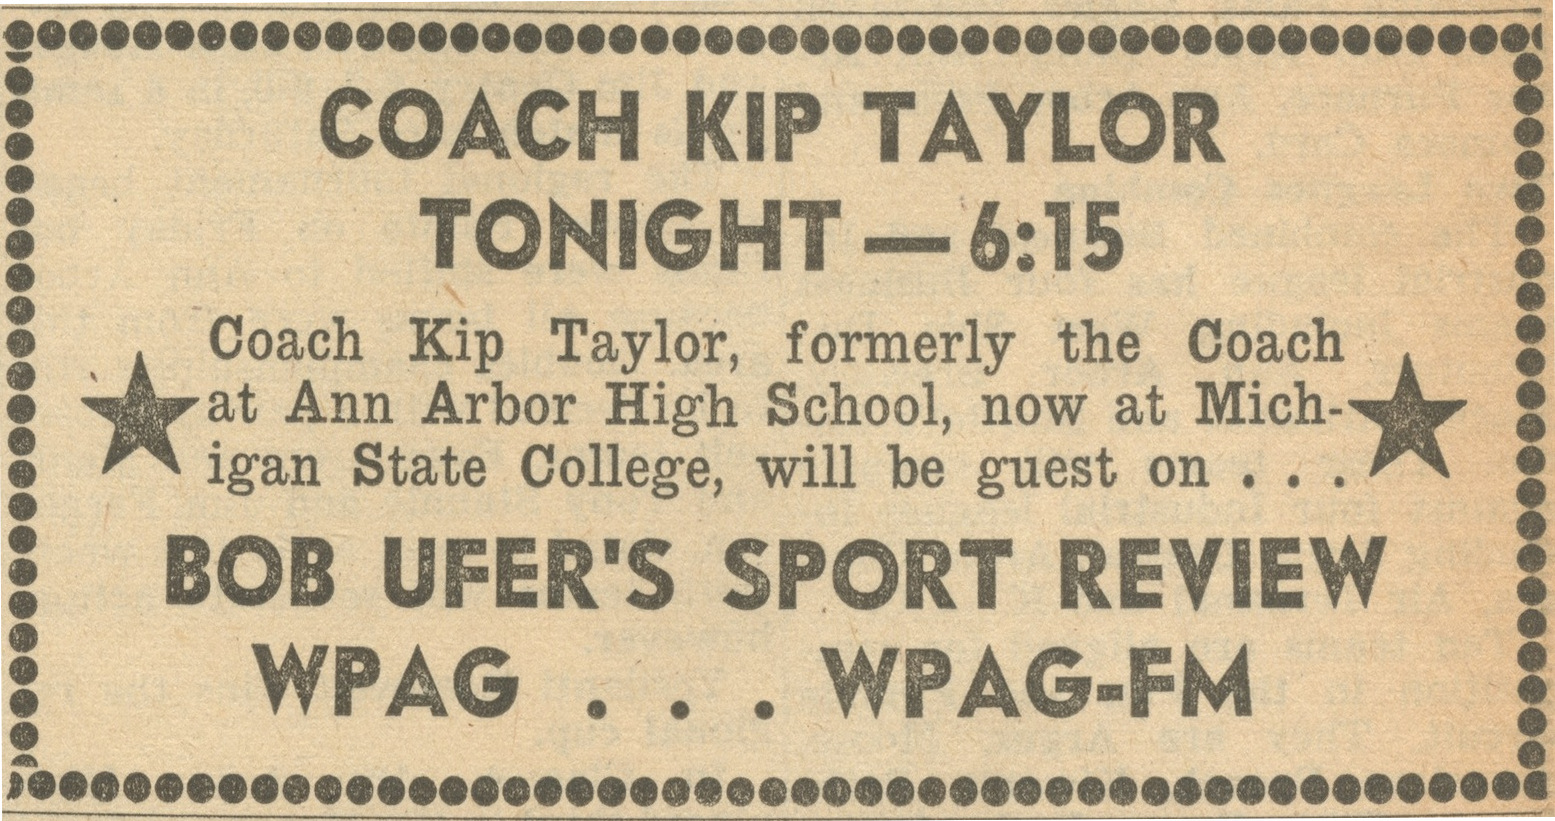 Coach Kip Taylor Tonight -- 6:15 image